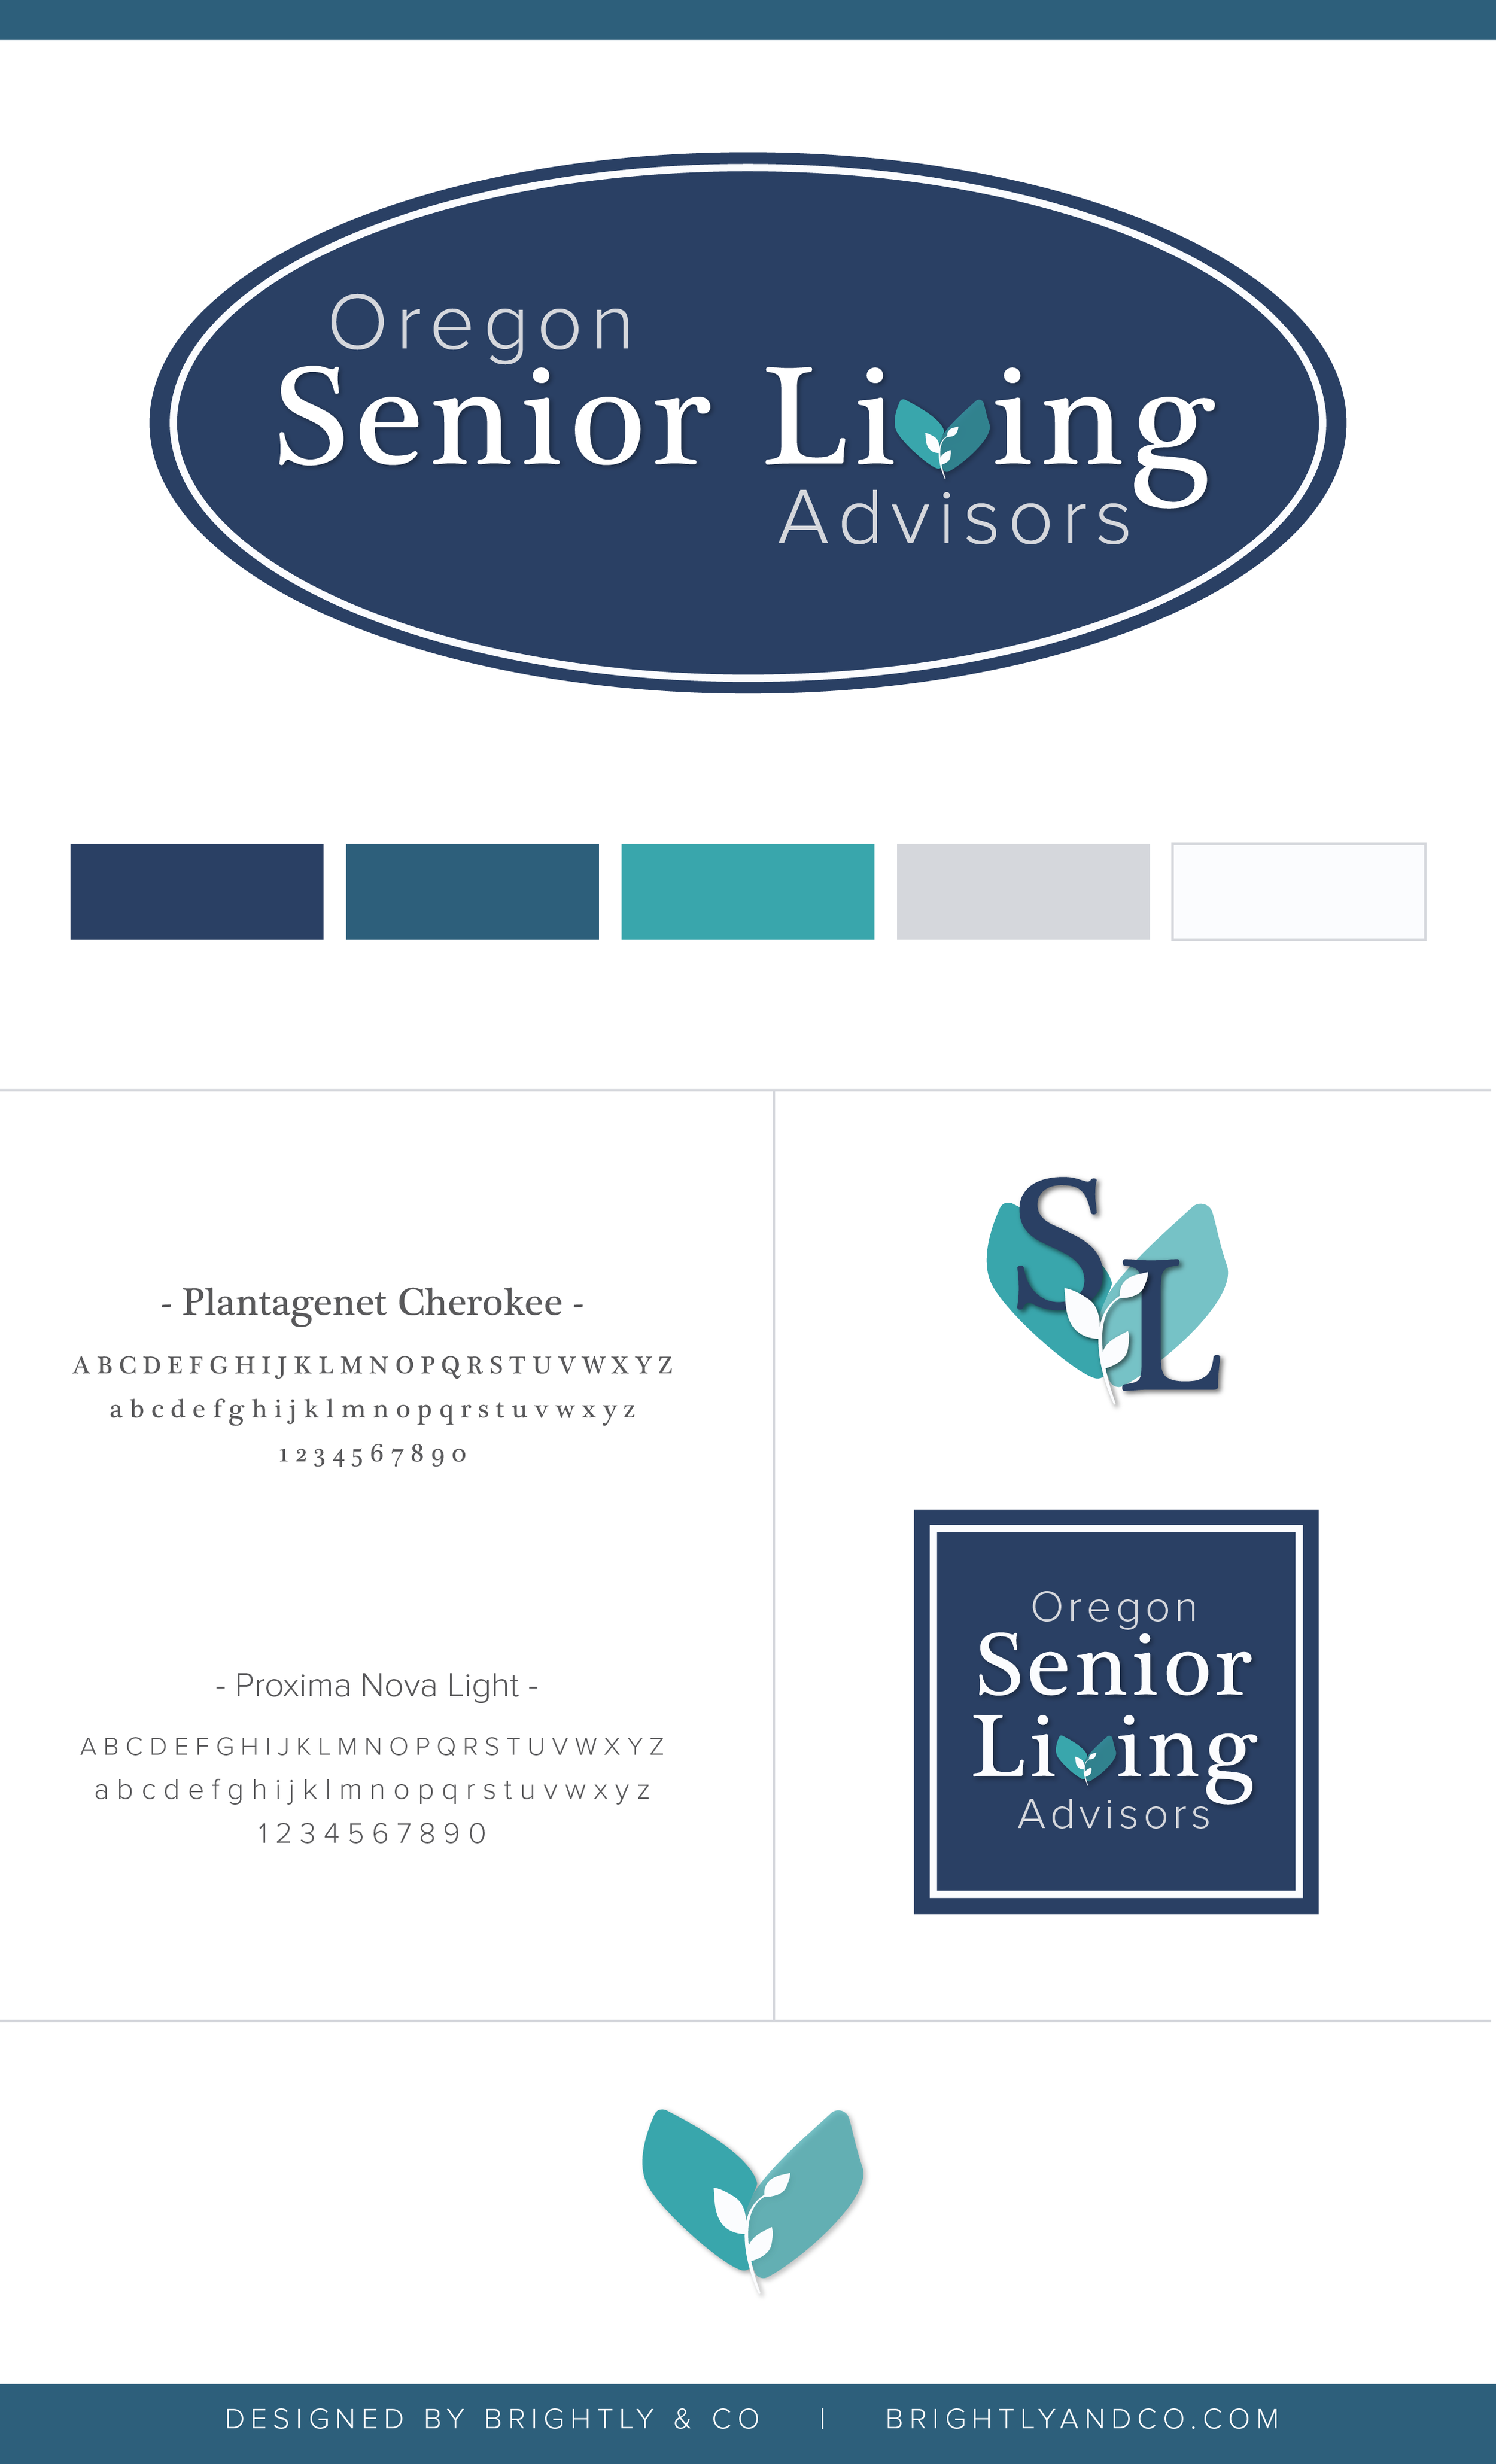 Brand Display Board for Oregon Senior Living Advisors - by Brightly & Co